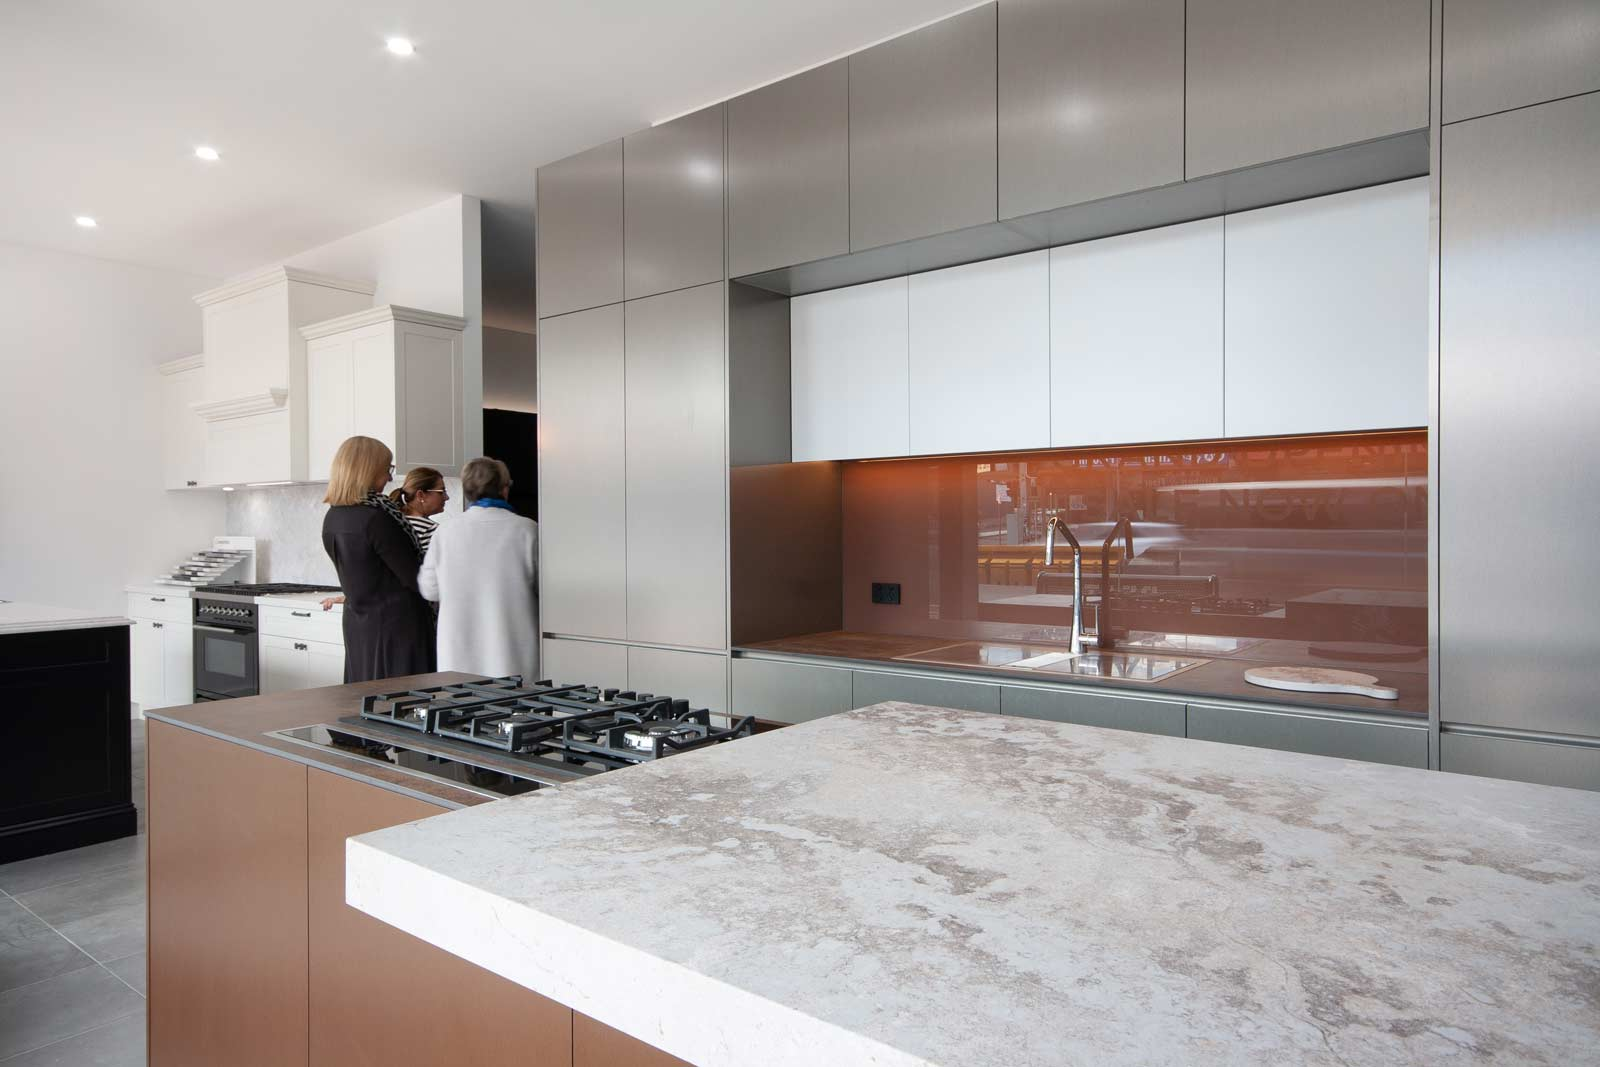 Kitchen design display featuring Caesarstone Excava benchtop at Premier Kitchen's Showroom, Drummoyne.